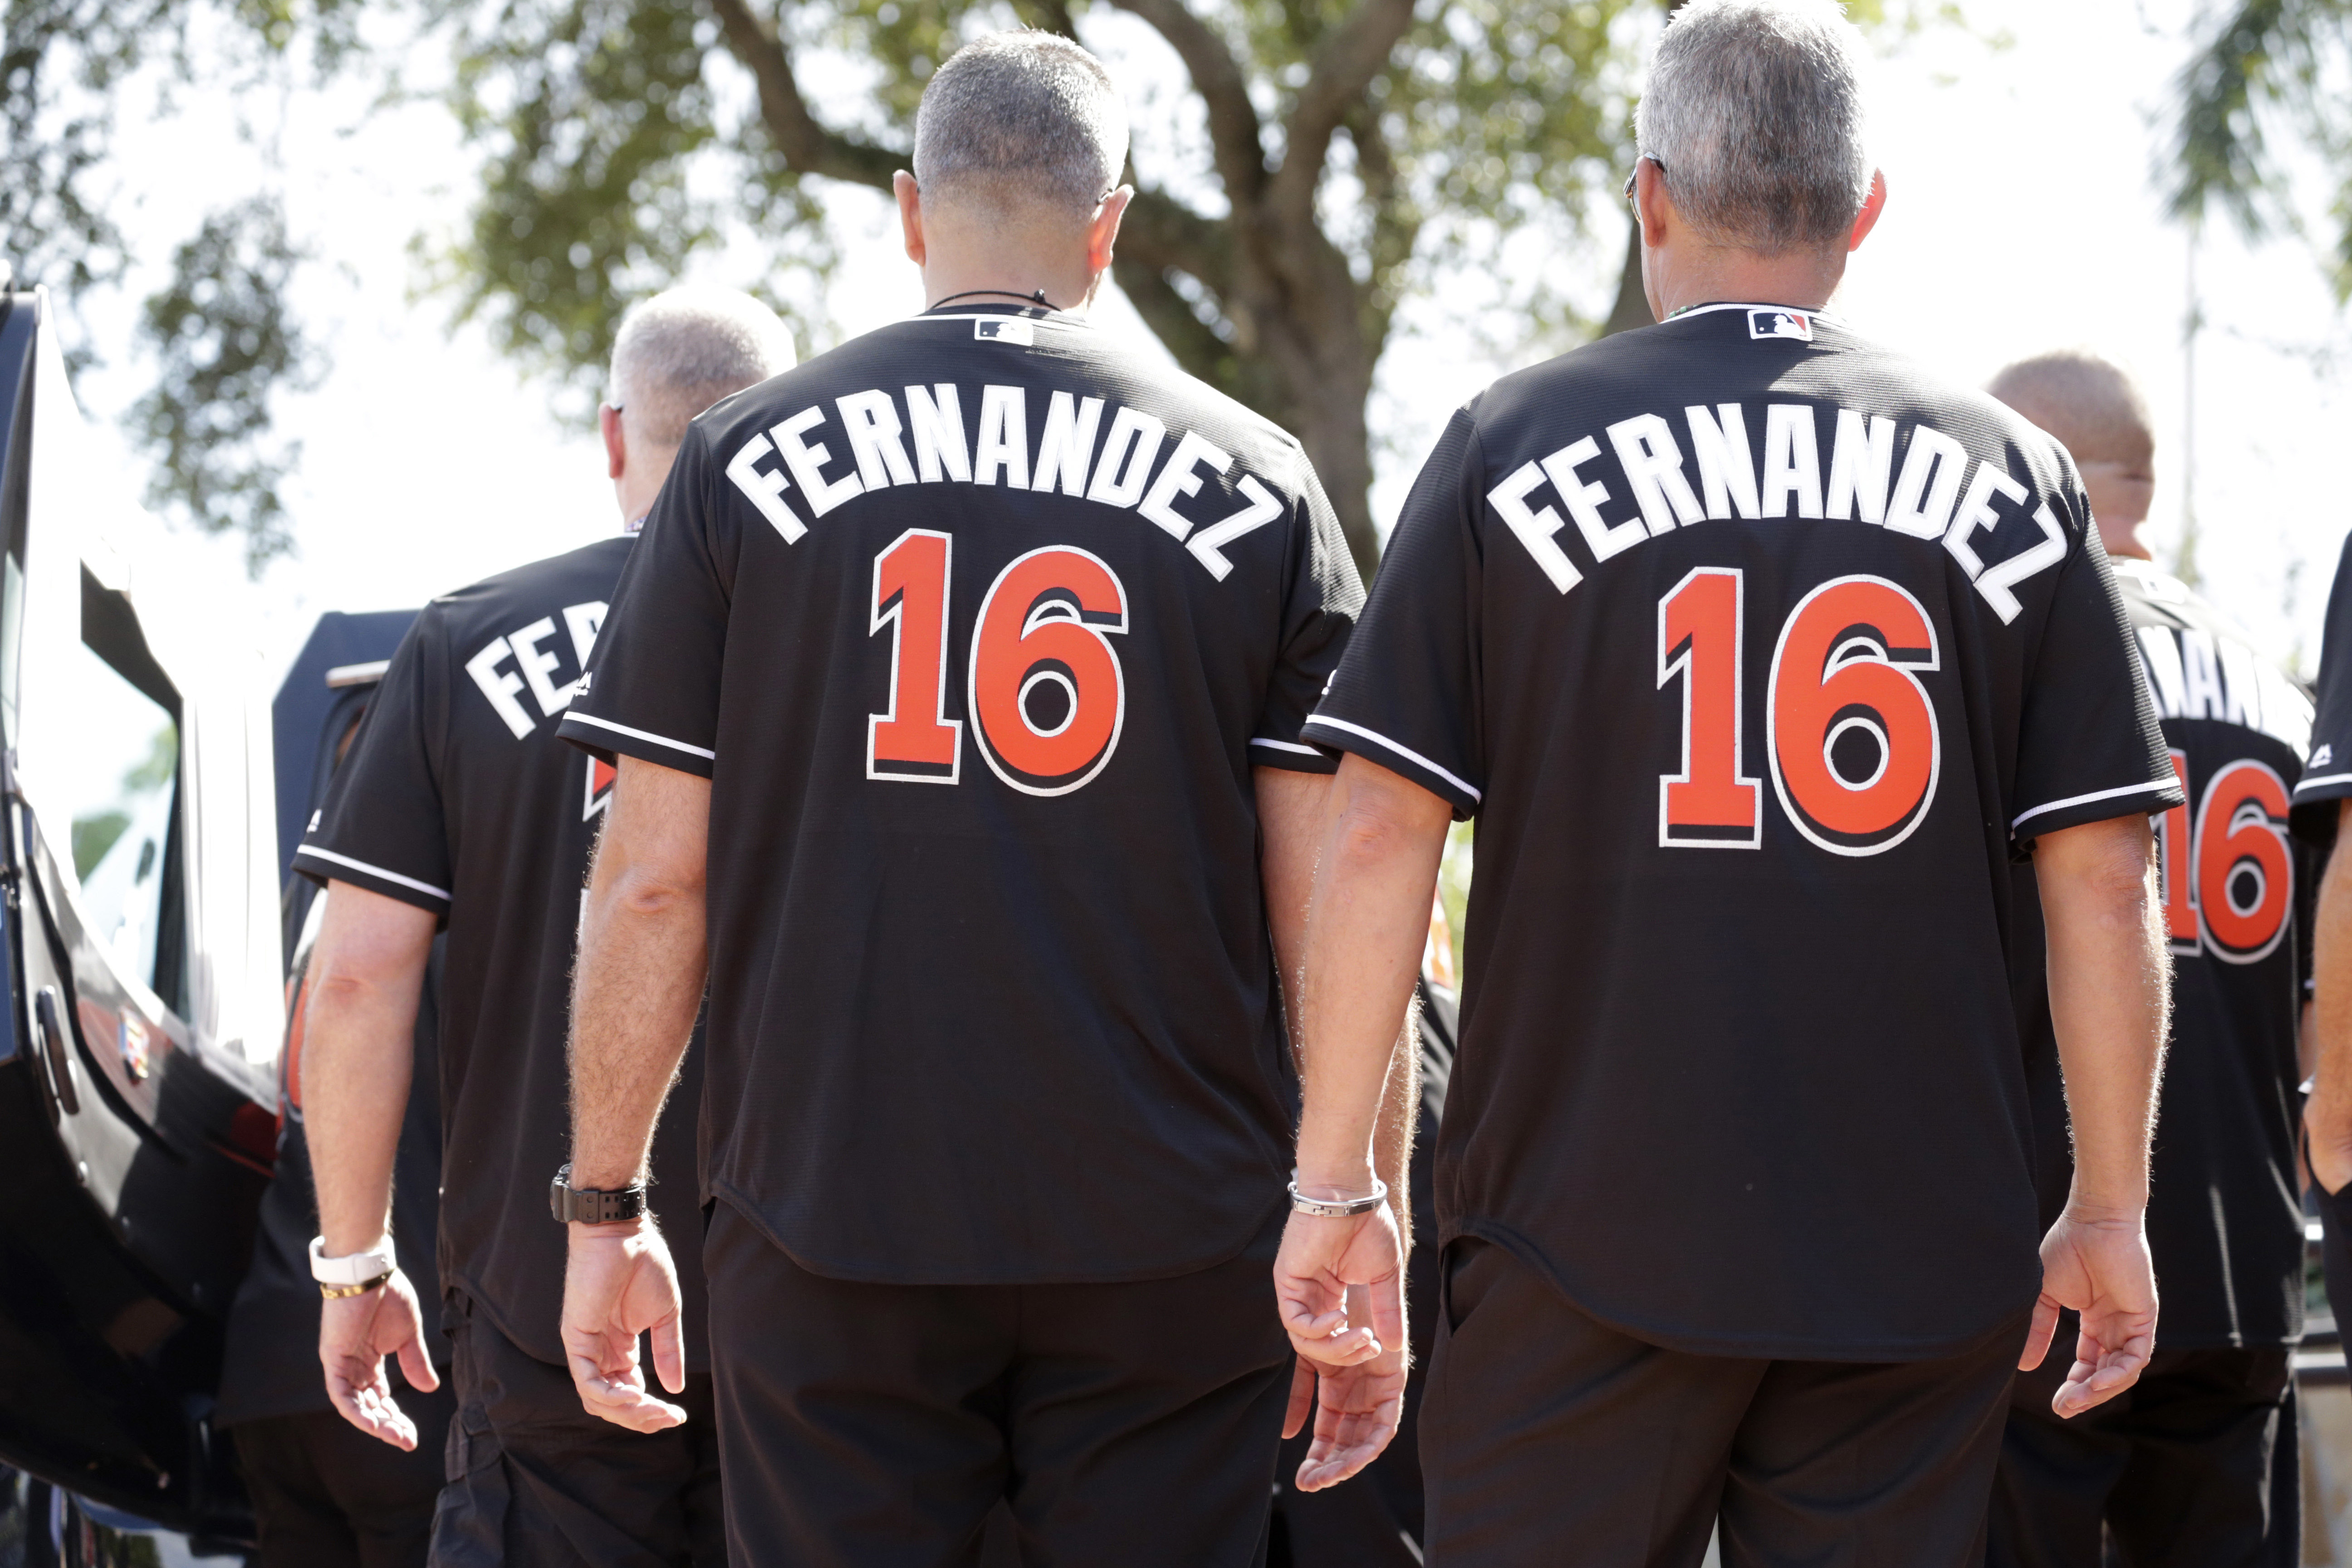 Pallbearers wearing the number 16 jersey, prepare to carry the coffin carrying Miami Marlins pitcher Jose Fernandez into a memorial service at St. Brendan's Catholic Church, Wednesday, Sept. 28, 2016, in Miami. Fernandez, was killed in a weekend boat cras